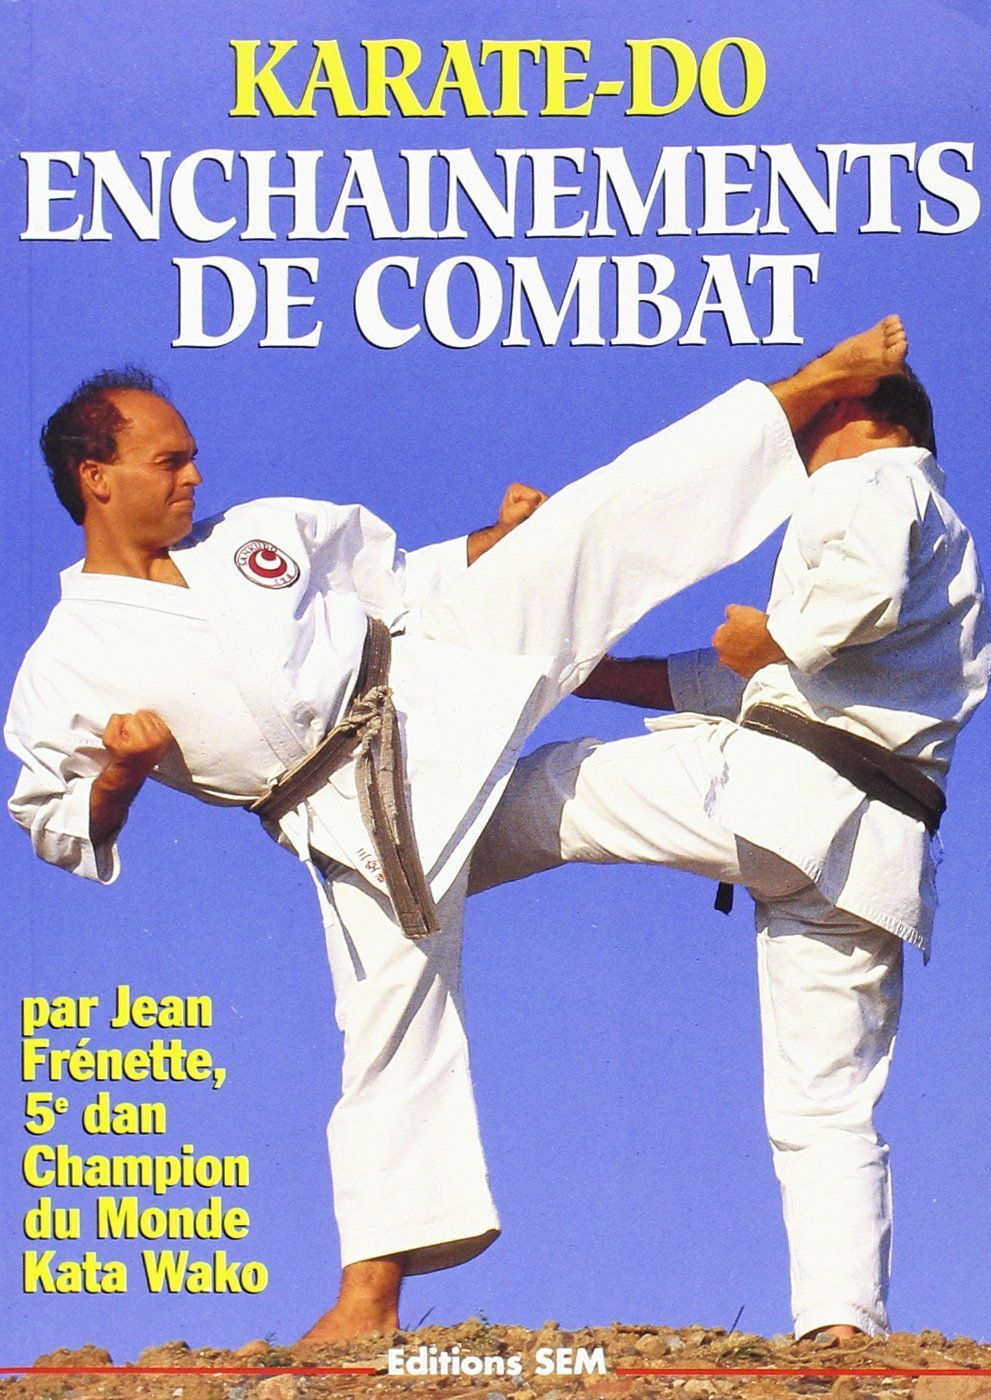 KARATE DO ENCHAINEMENTS DE COMBAT